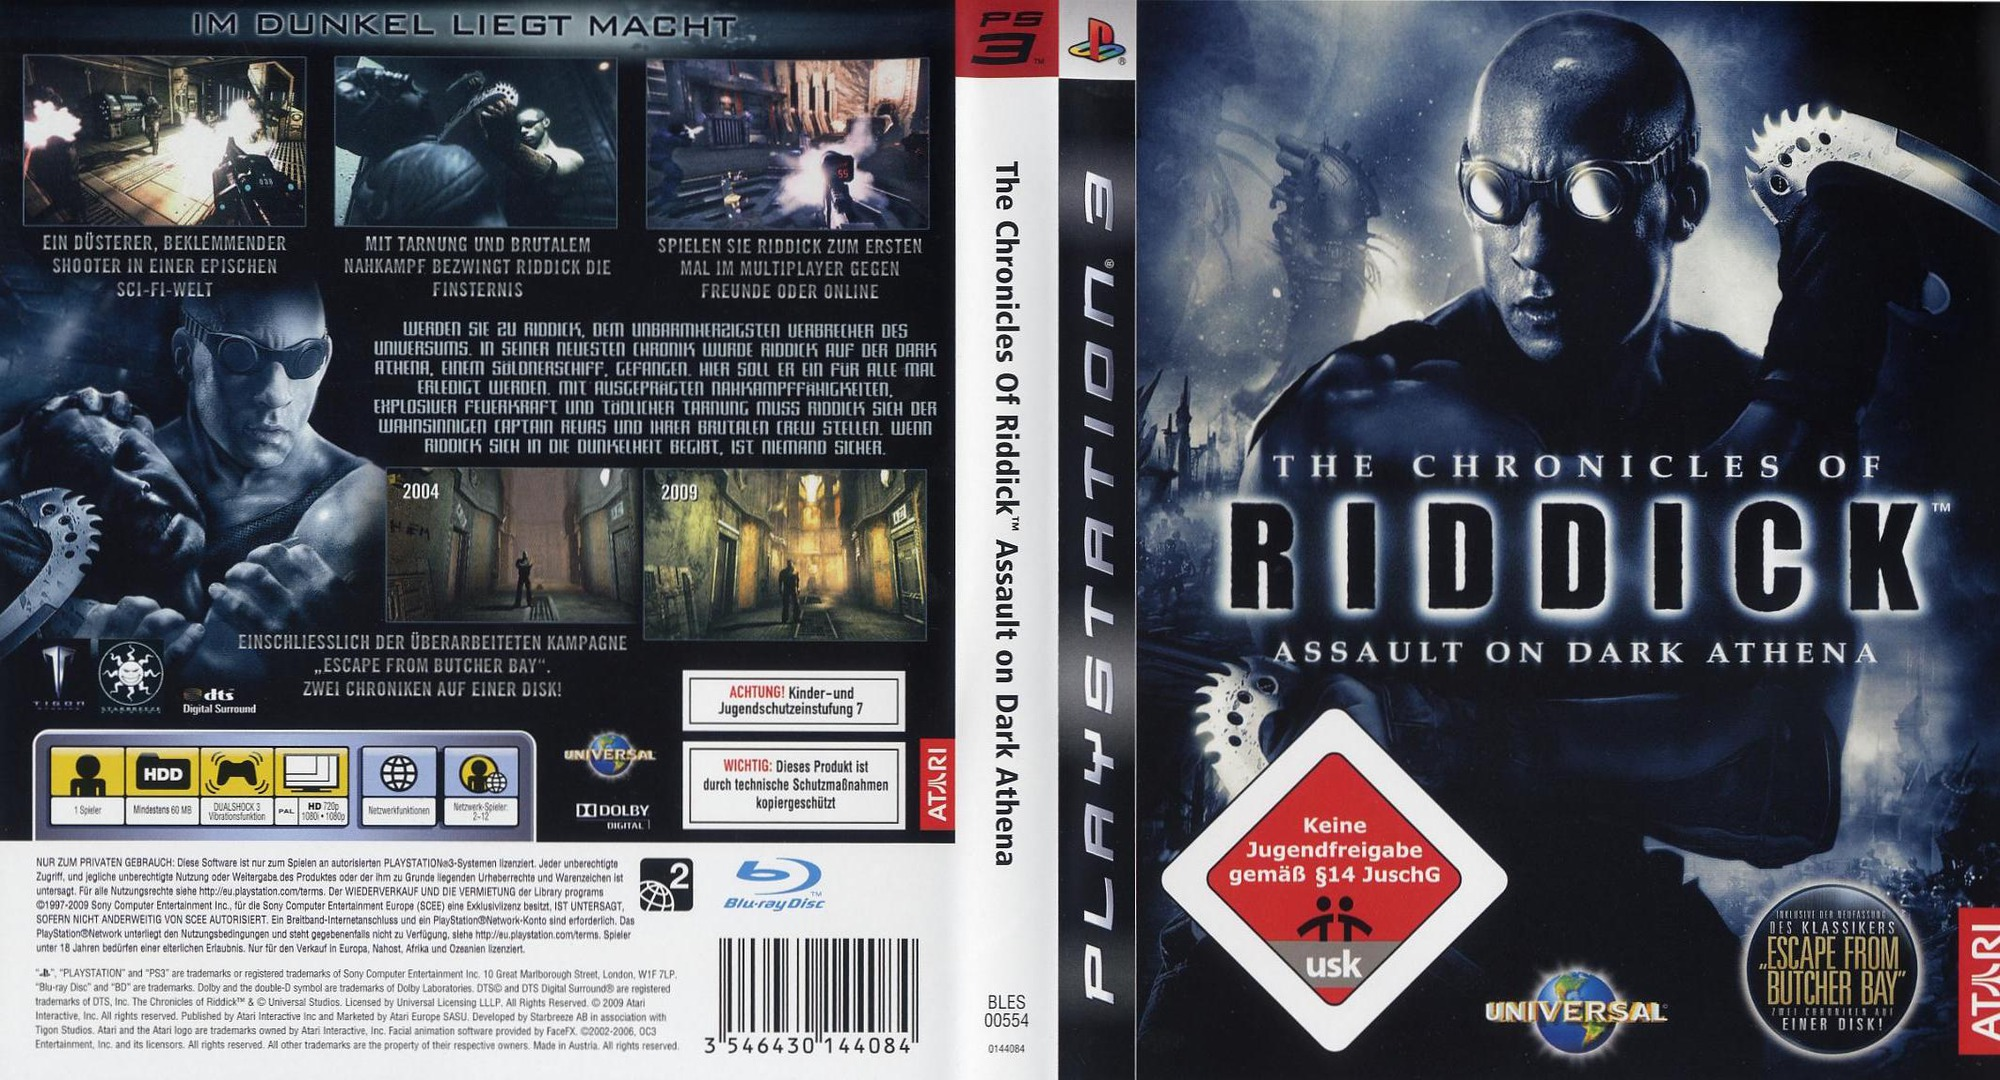 Bles00554 The Chronicles Of Riddick Assault On Dark Athena